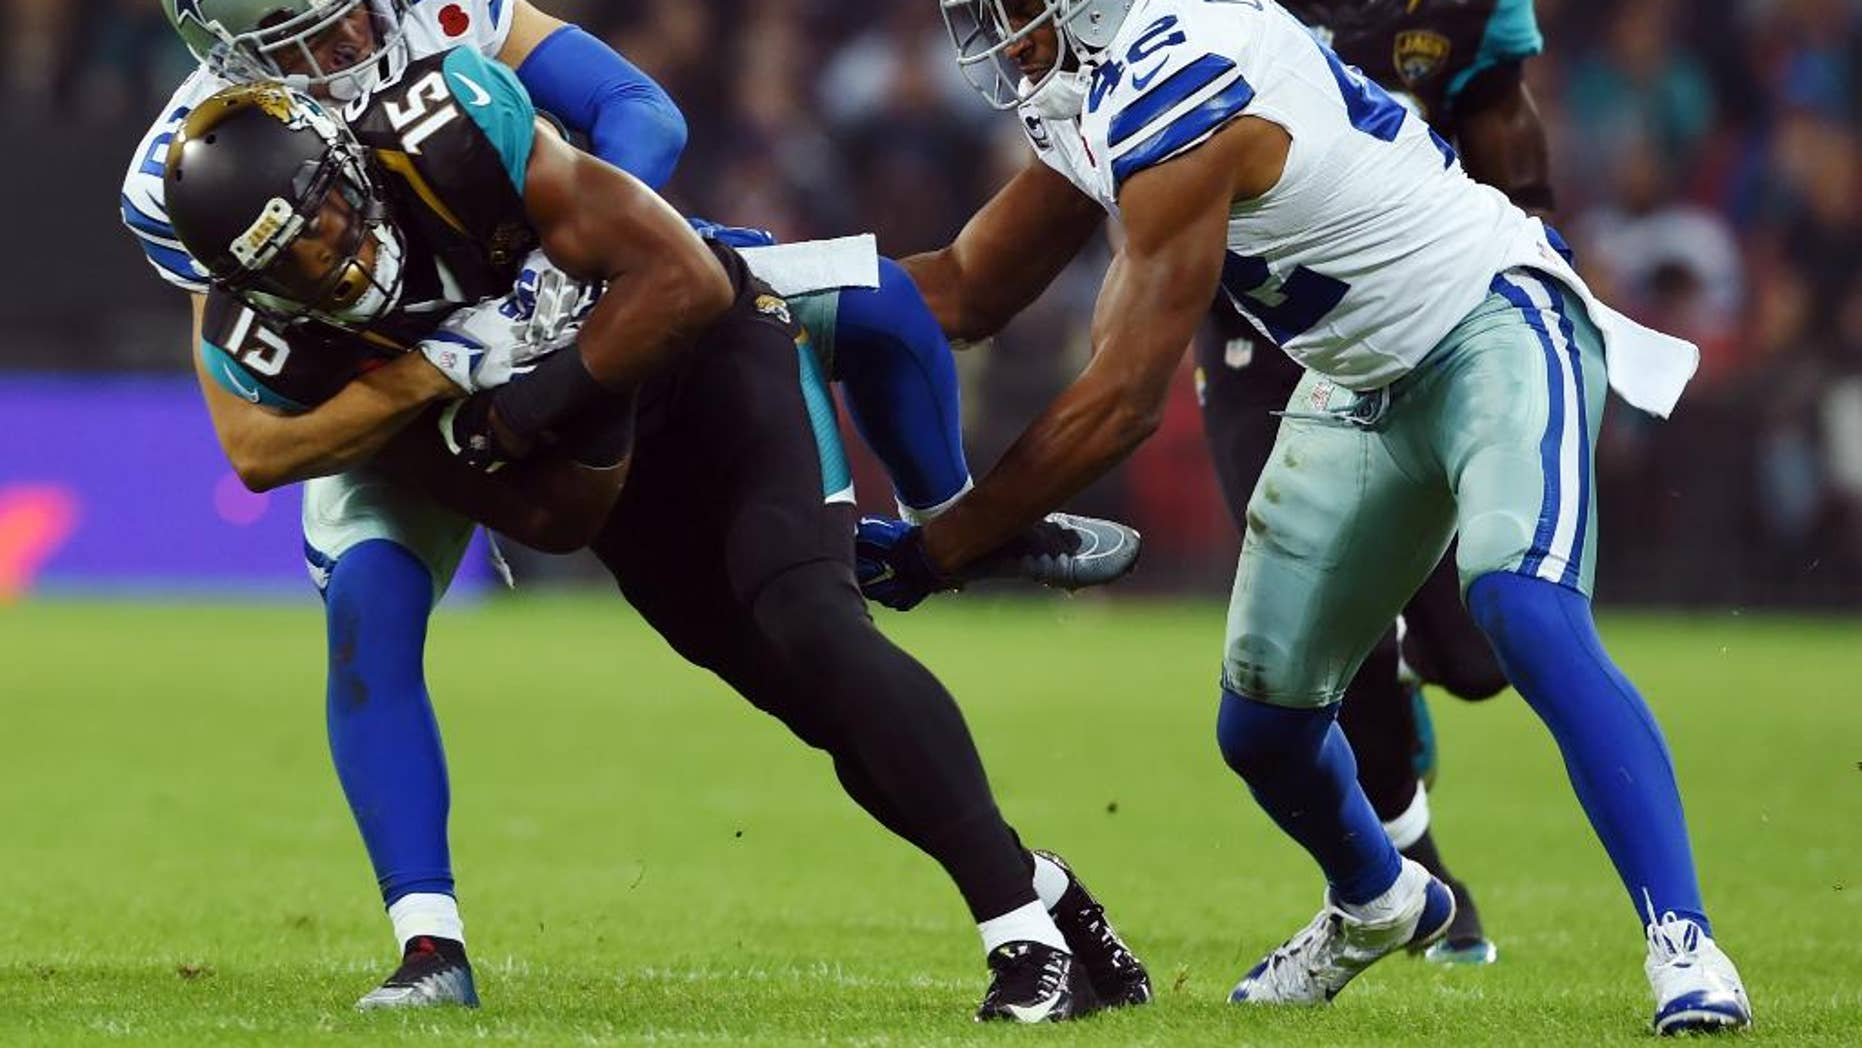 Jacksonville Jaguars wide receiver Allen Robinson (15) is tackled by Dallas Cowboys defensive back Sterling Moore (26) and strong safety Barry Church (42) during the first half of an NFL football game at Wembley Stadium, London, Sunday, Nov. 9, 2014.  (AP Photo/Matt Dunham)